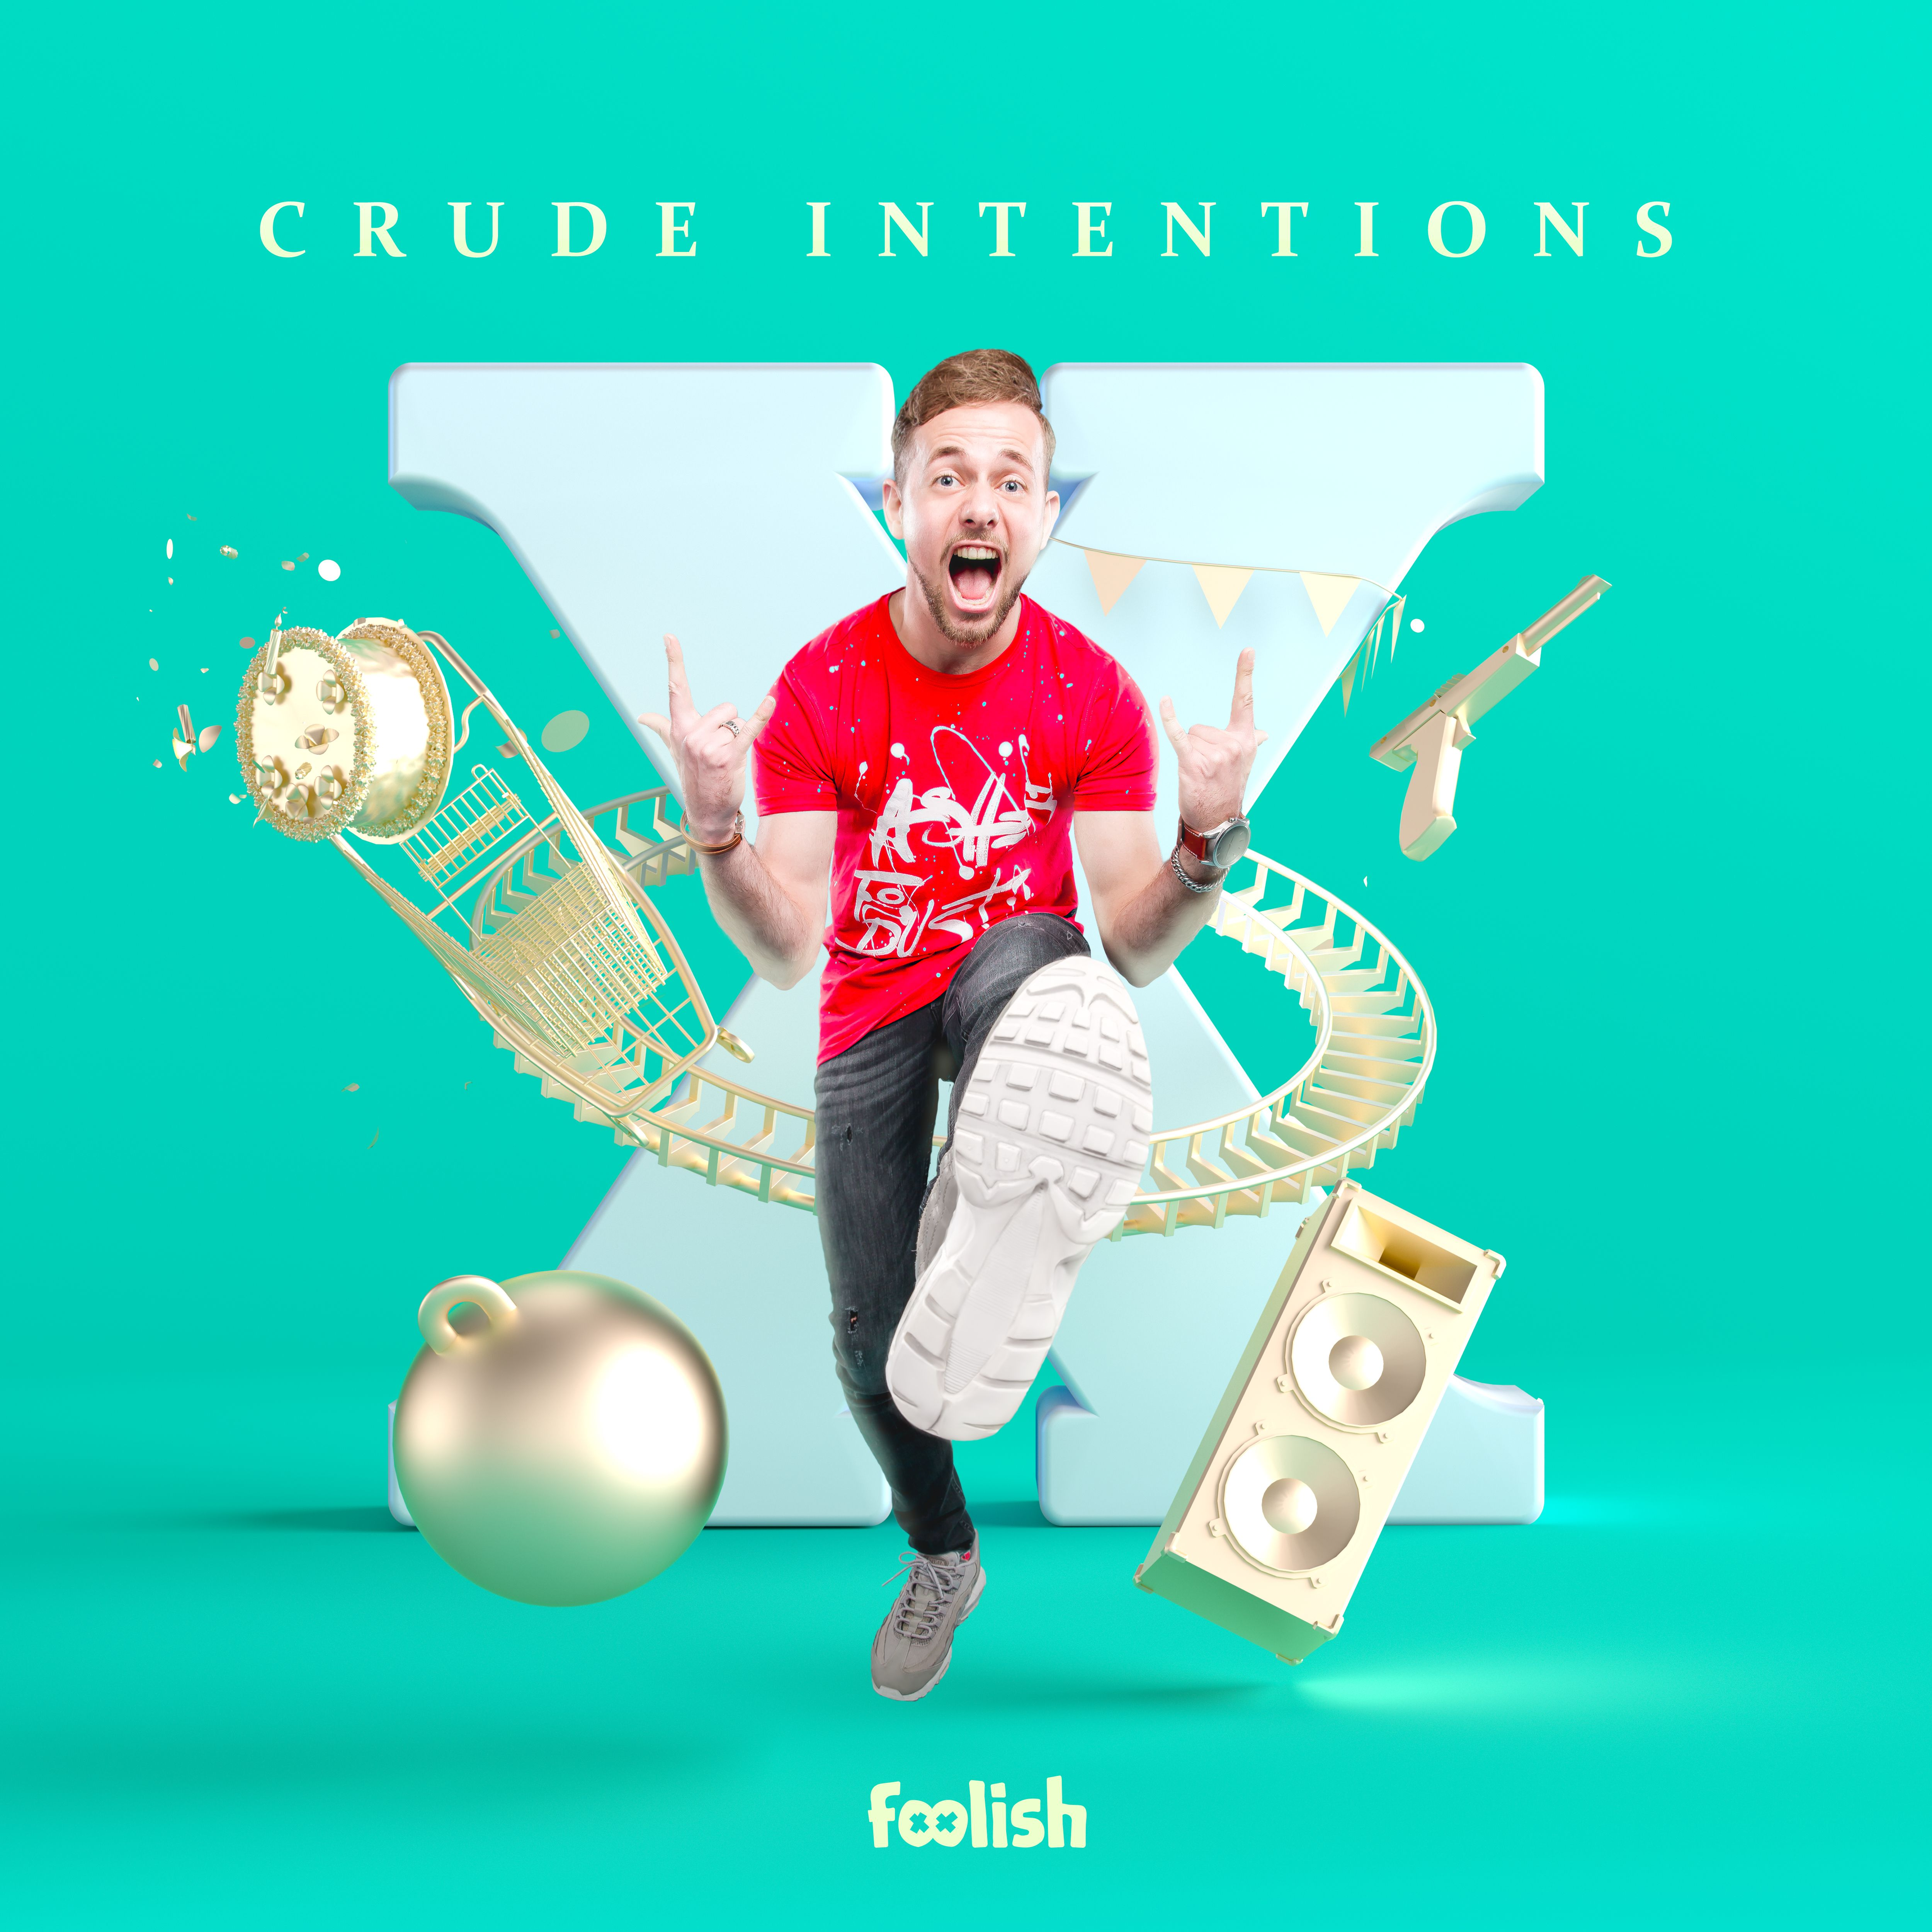 Crude Intentions - X